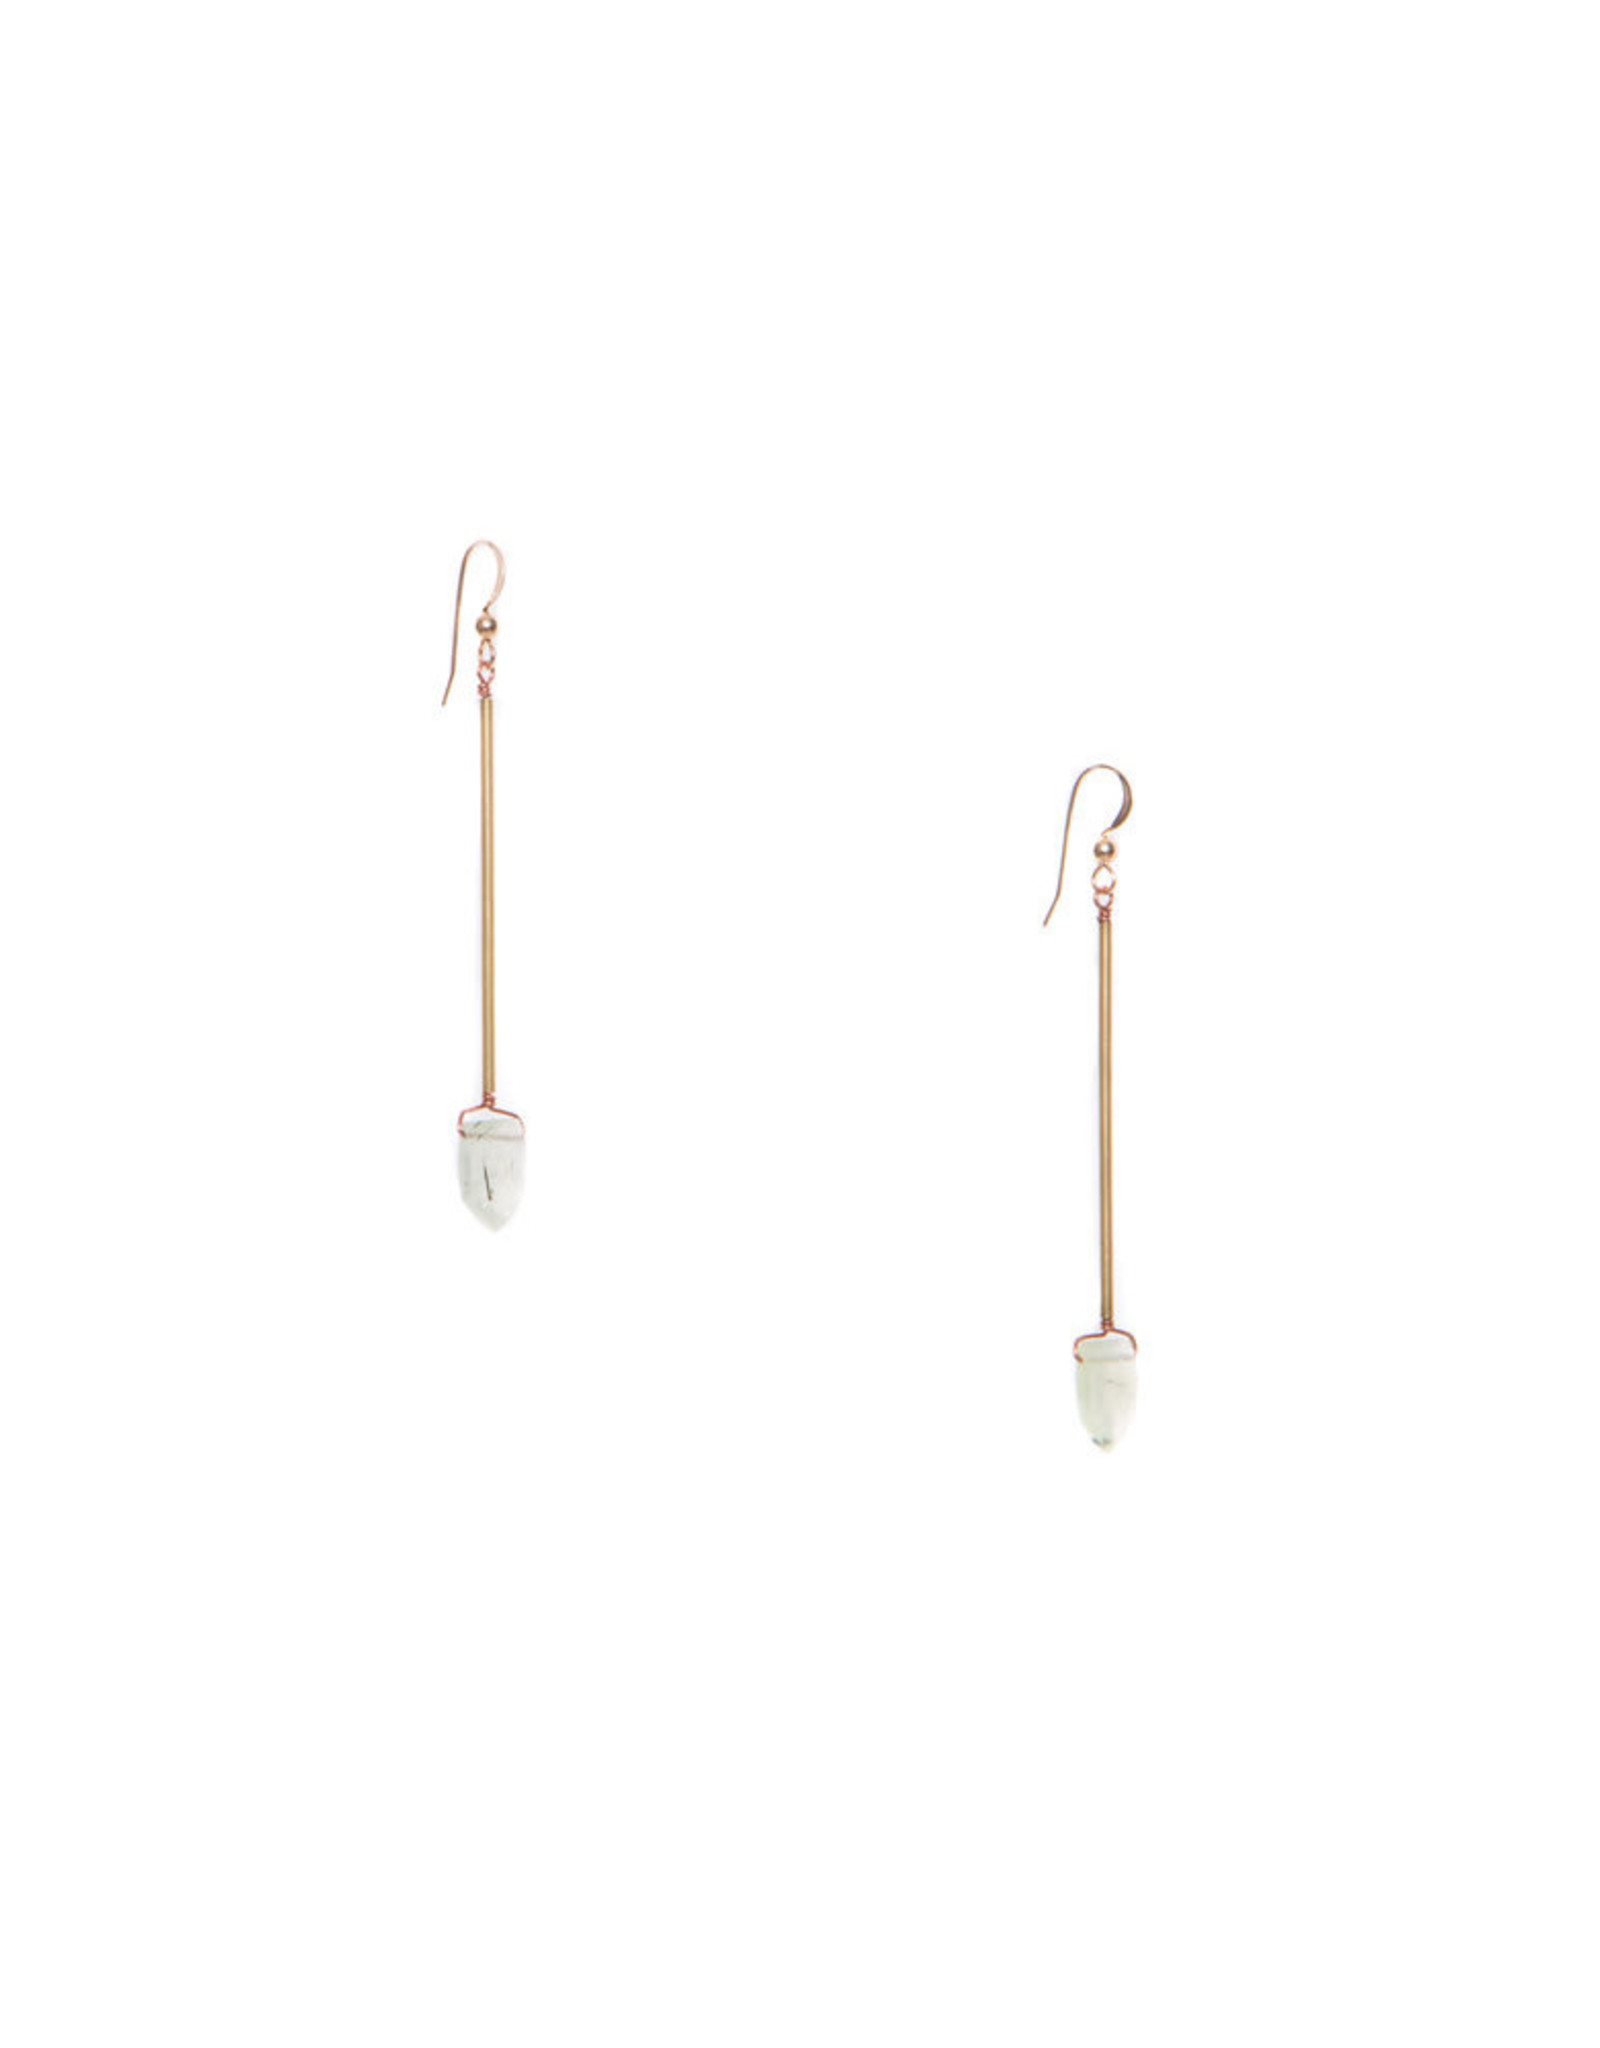 Hailey Gerrits Designs Reed Earrings - Prehnite